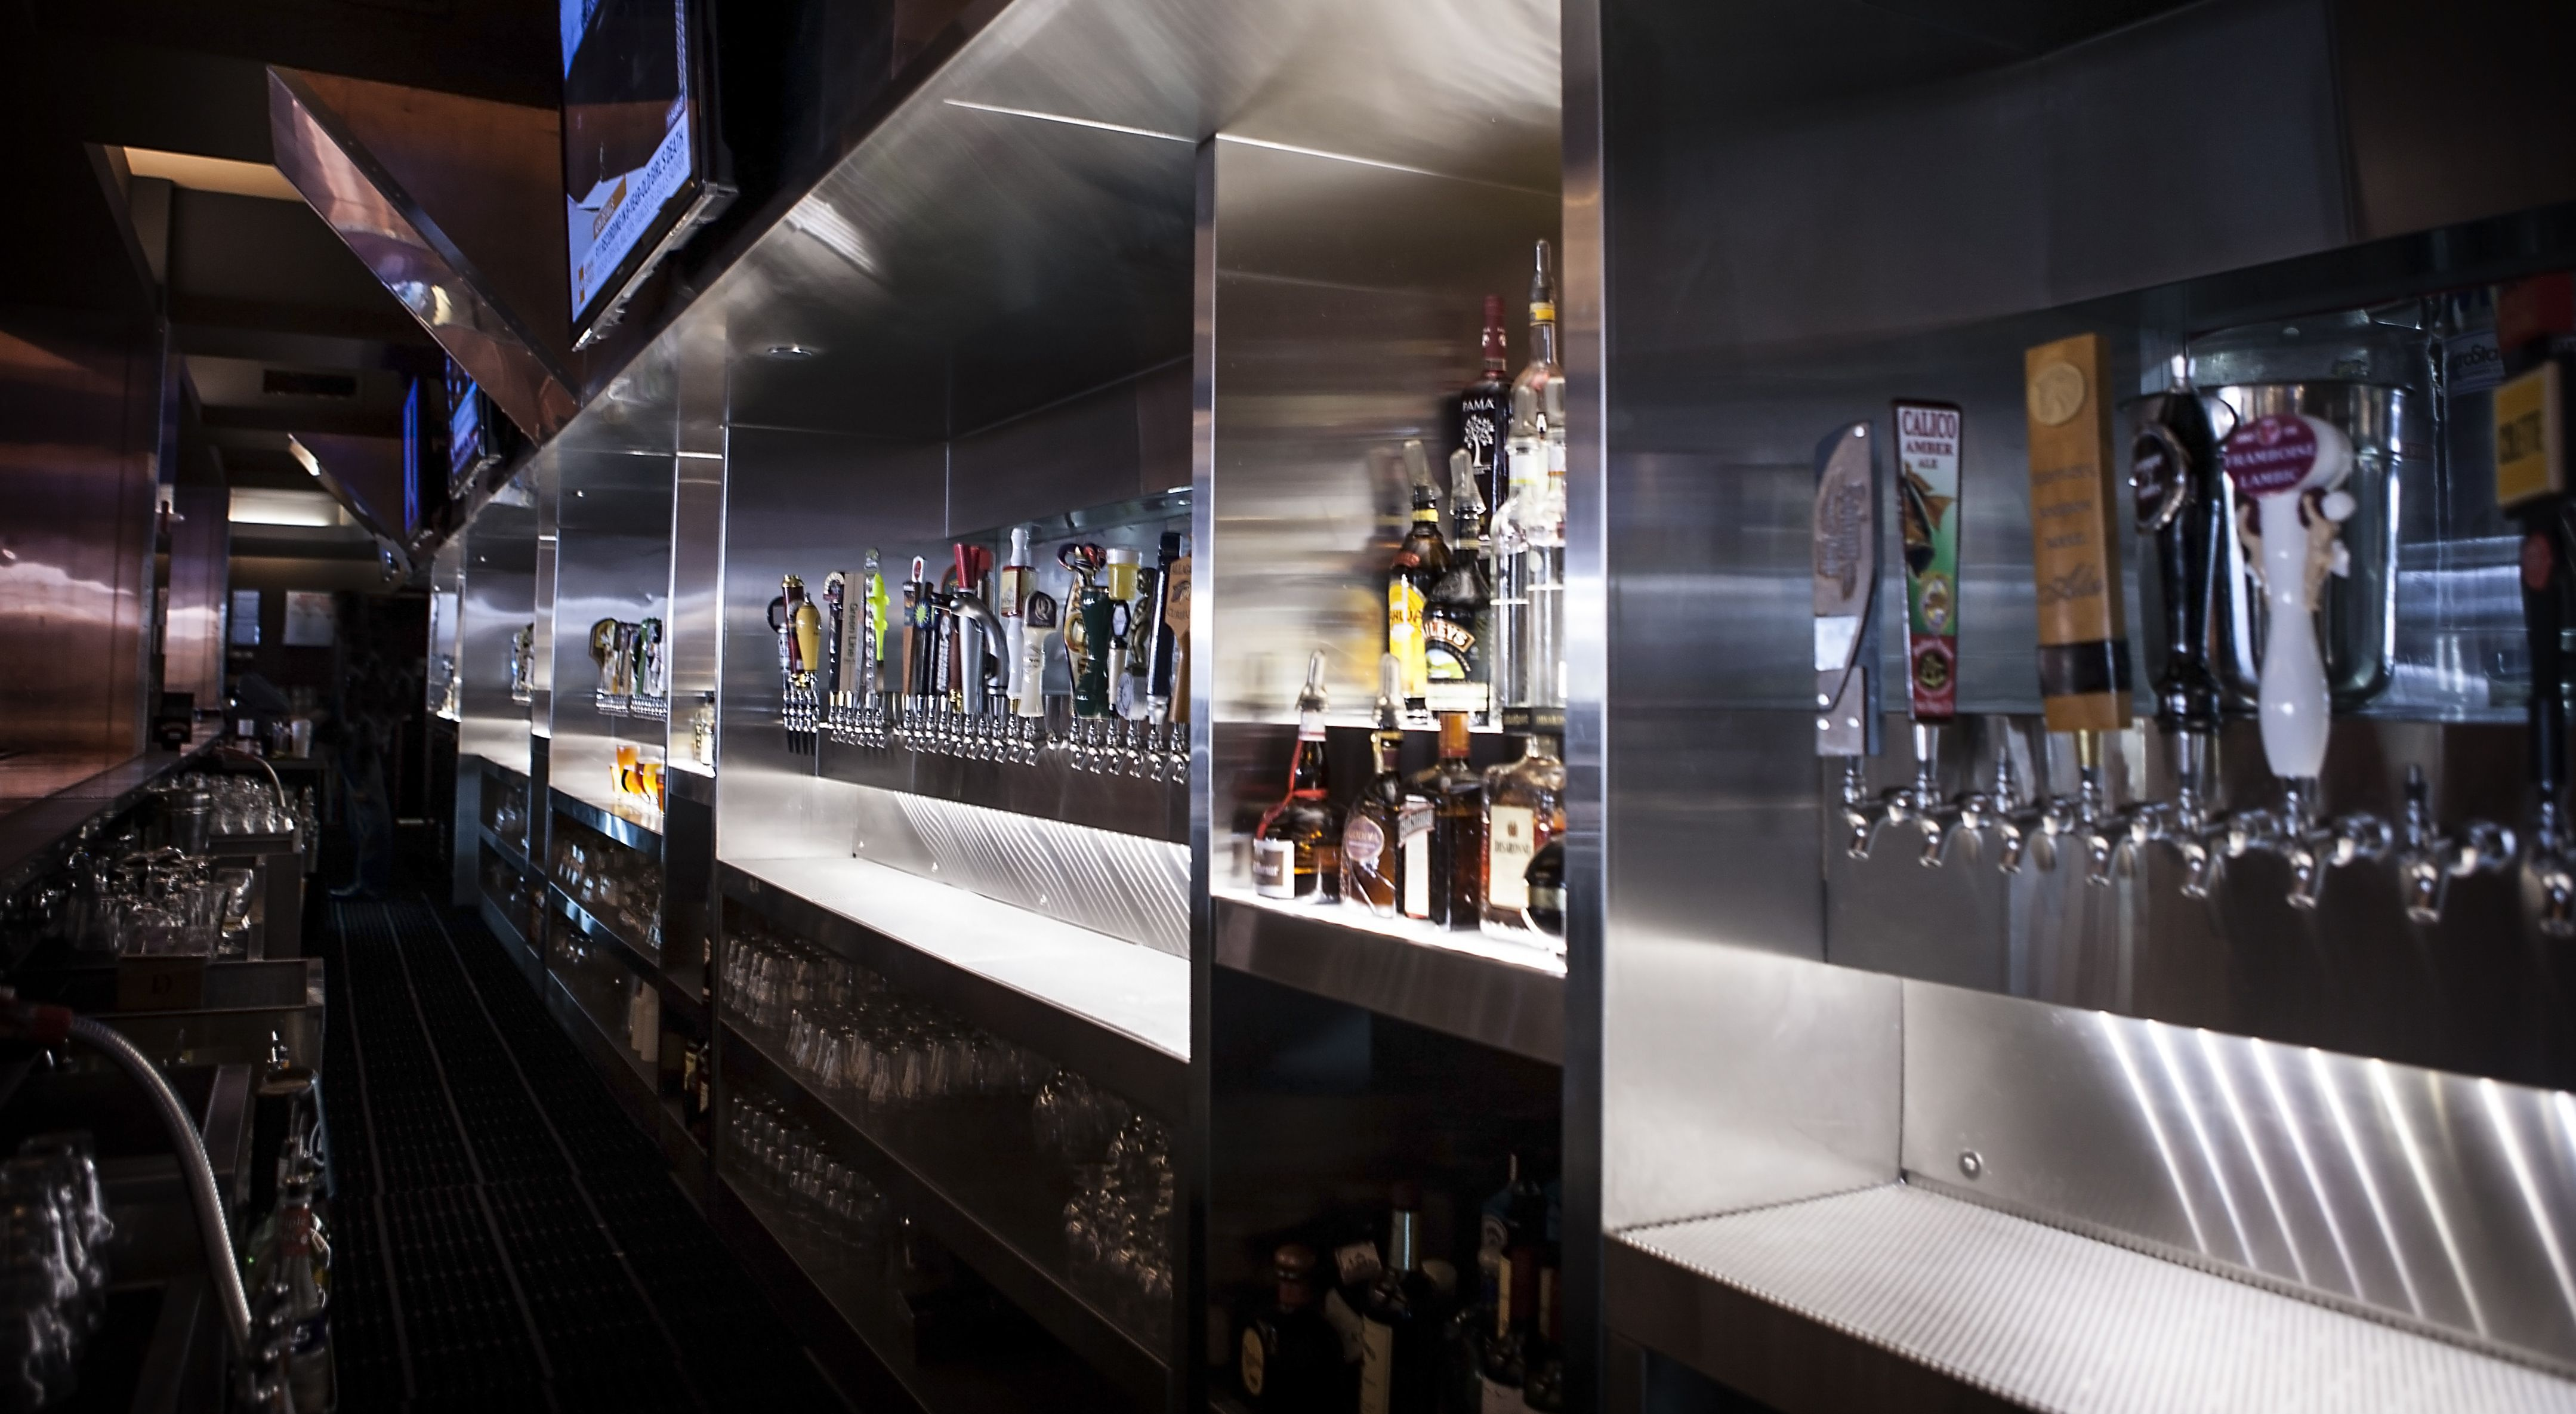 Custom draft beer tower by Micro Matic with stainless steel faucets ...